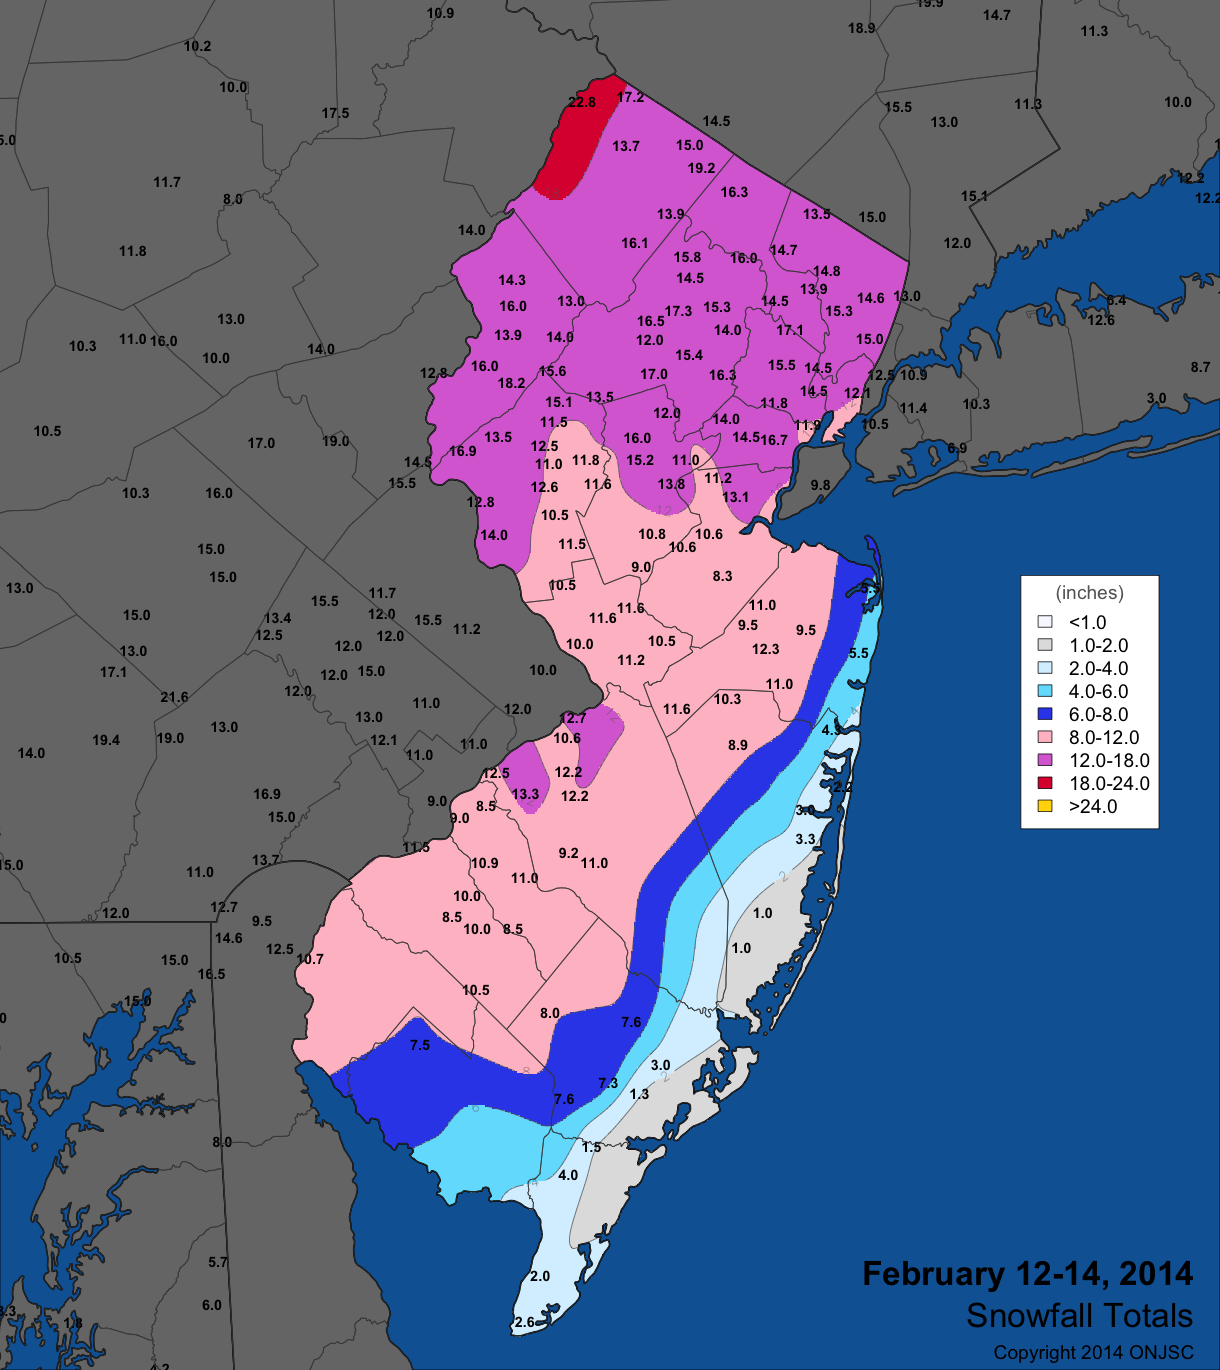 Office of the New Jersey State Climatologist on 24 hour snowfall map, 2012-2013 annual mean snowfall map, boston snowfall map, new york snowfall map, current snowfall map, northeast snow totals map, snowstorm map, blizzard totals map, snowfall today map, vt snowfall map, snowfall averages map, wny zip code map, annual snow totals map, rainfall totals map, square map, snowfall state map, idaho snowfall map, points of interest map, projected snowfall map, new jersey snow totals map,